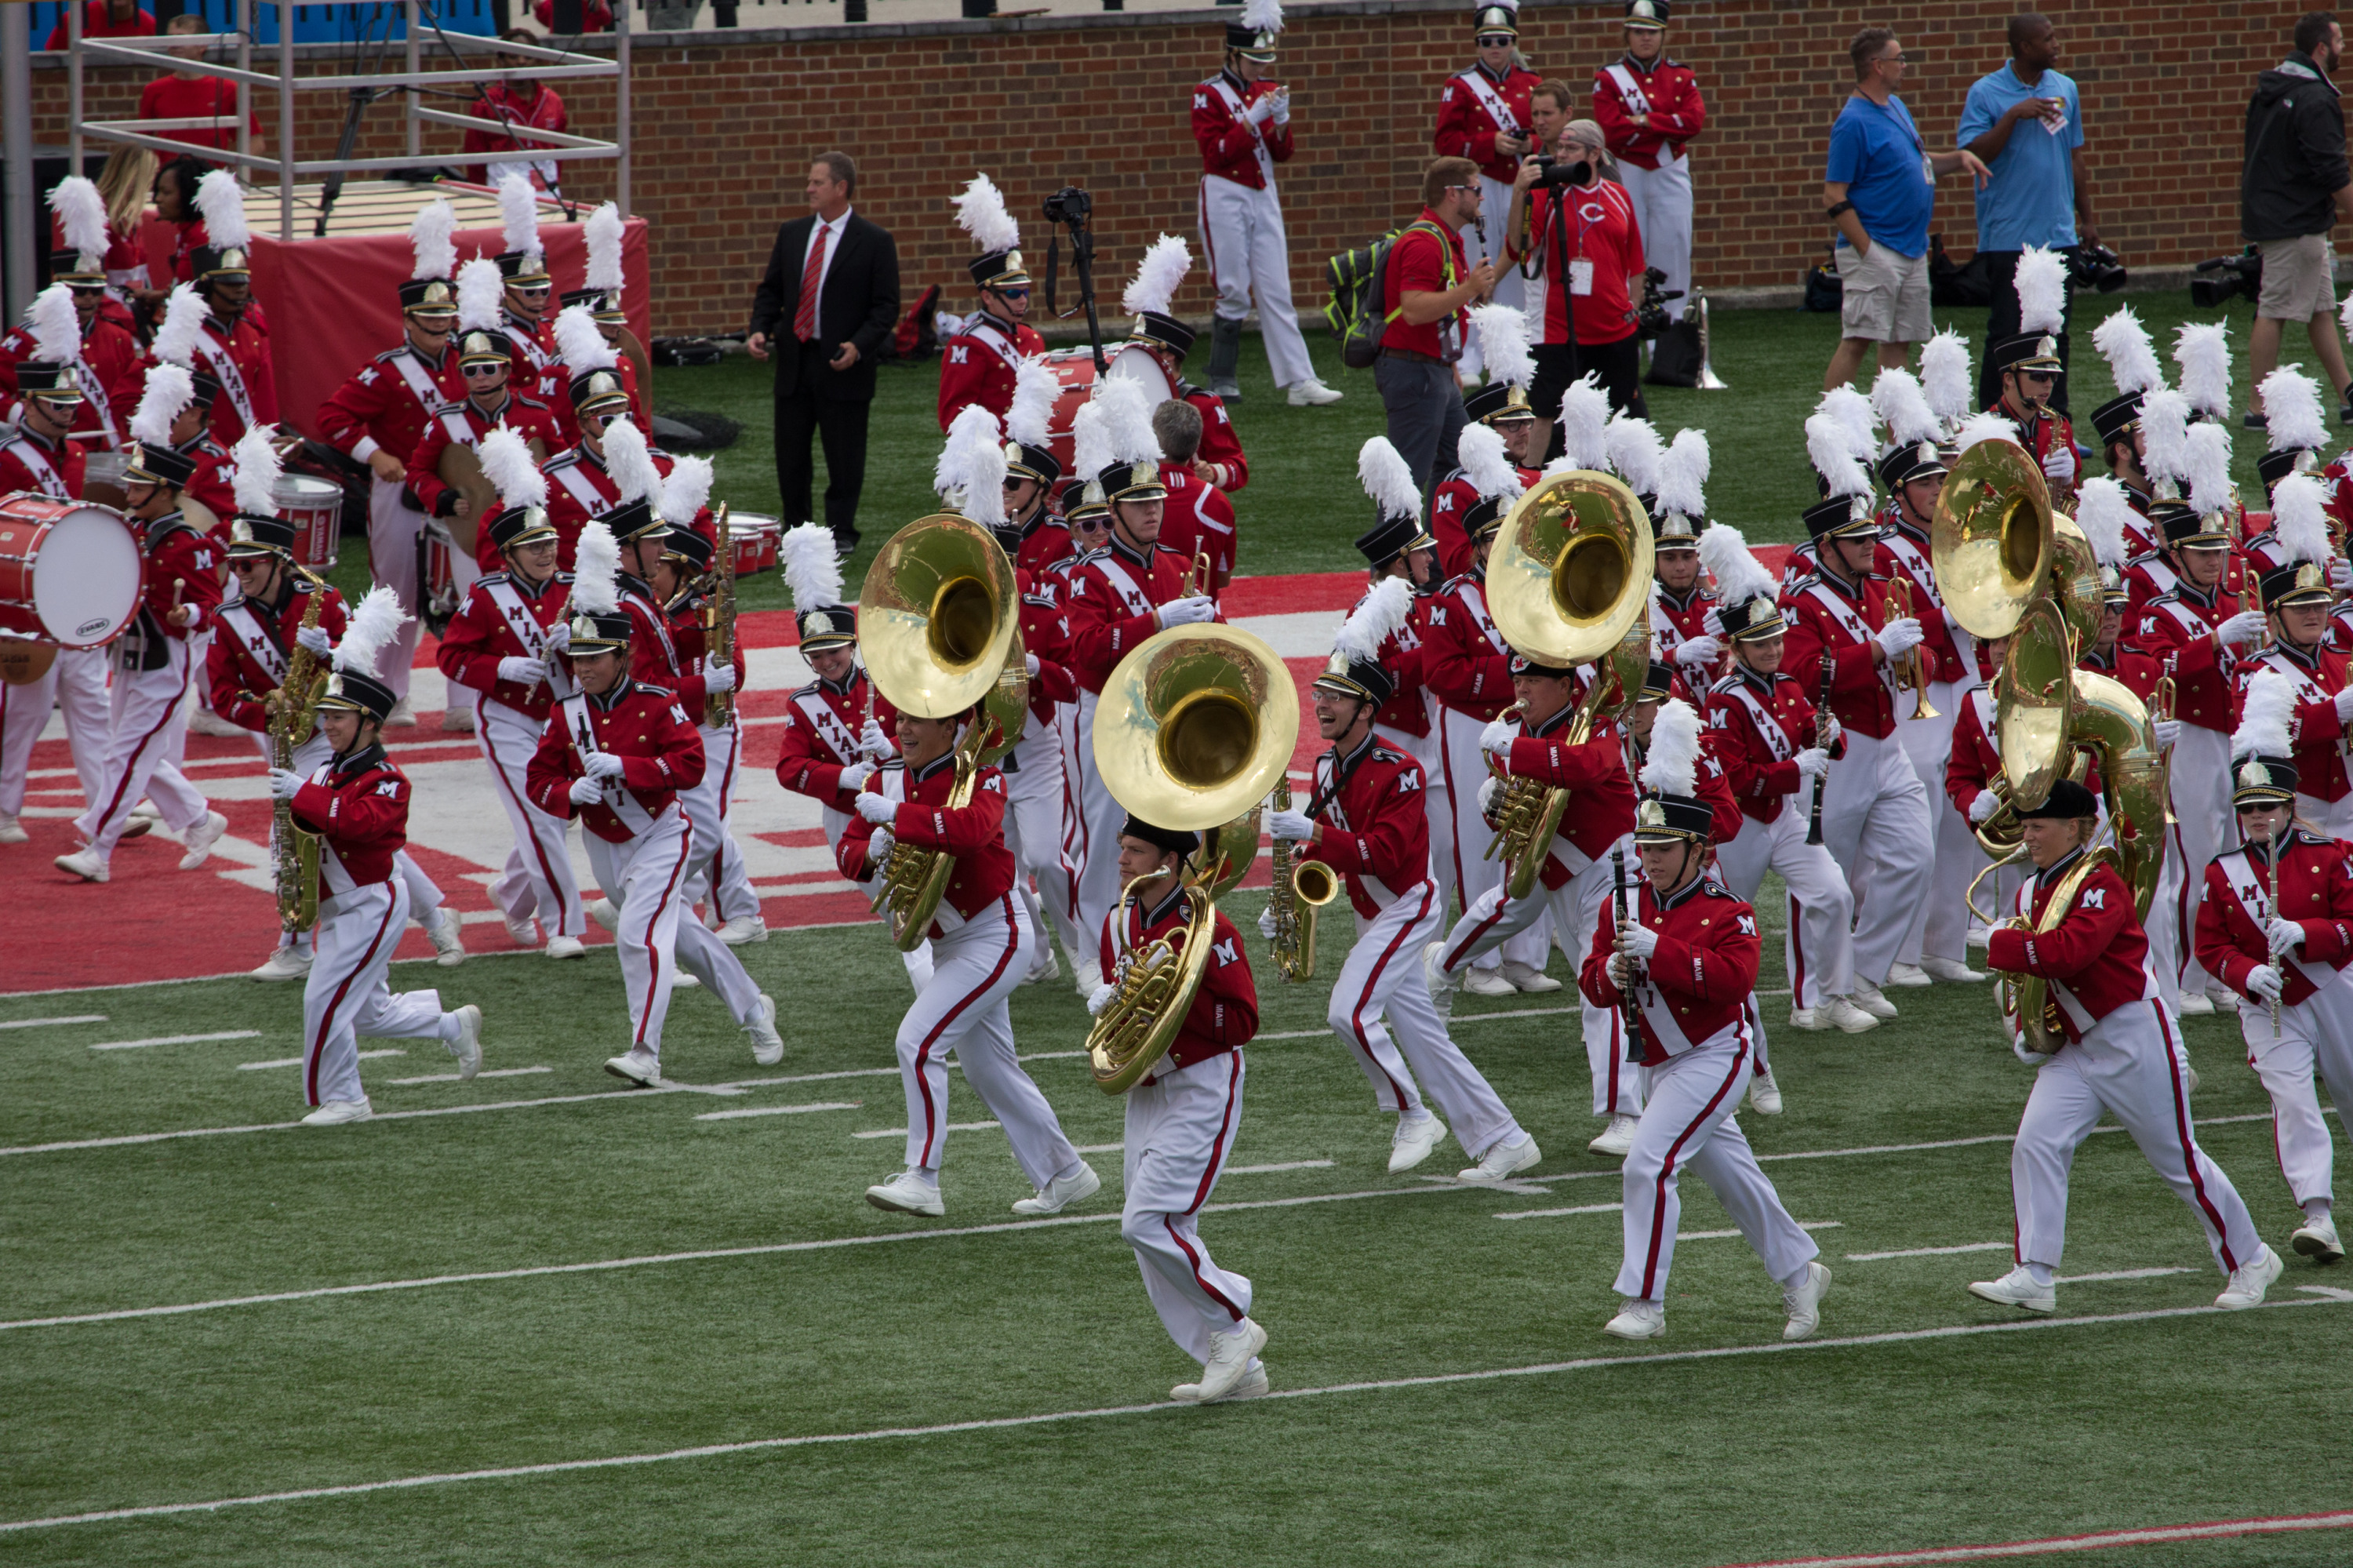 my first weeks experience on a marching band camp Online registration for vienna band camp is now closed you can still register on-site wednesday morning click on the link below to download the registration form.